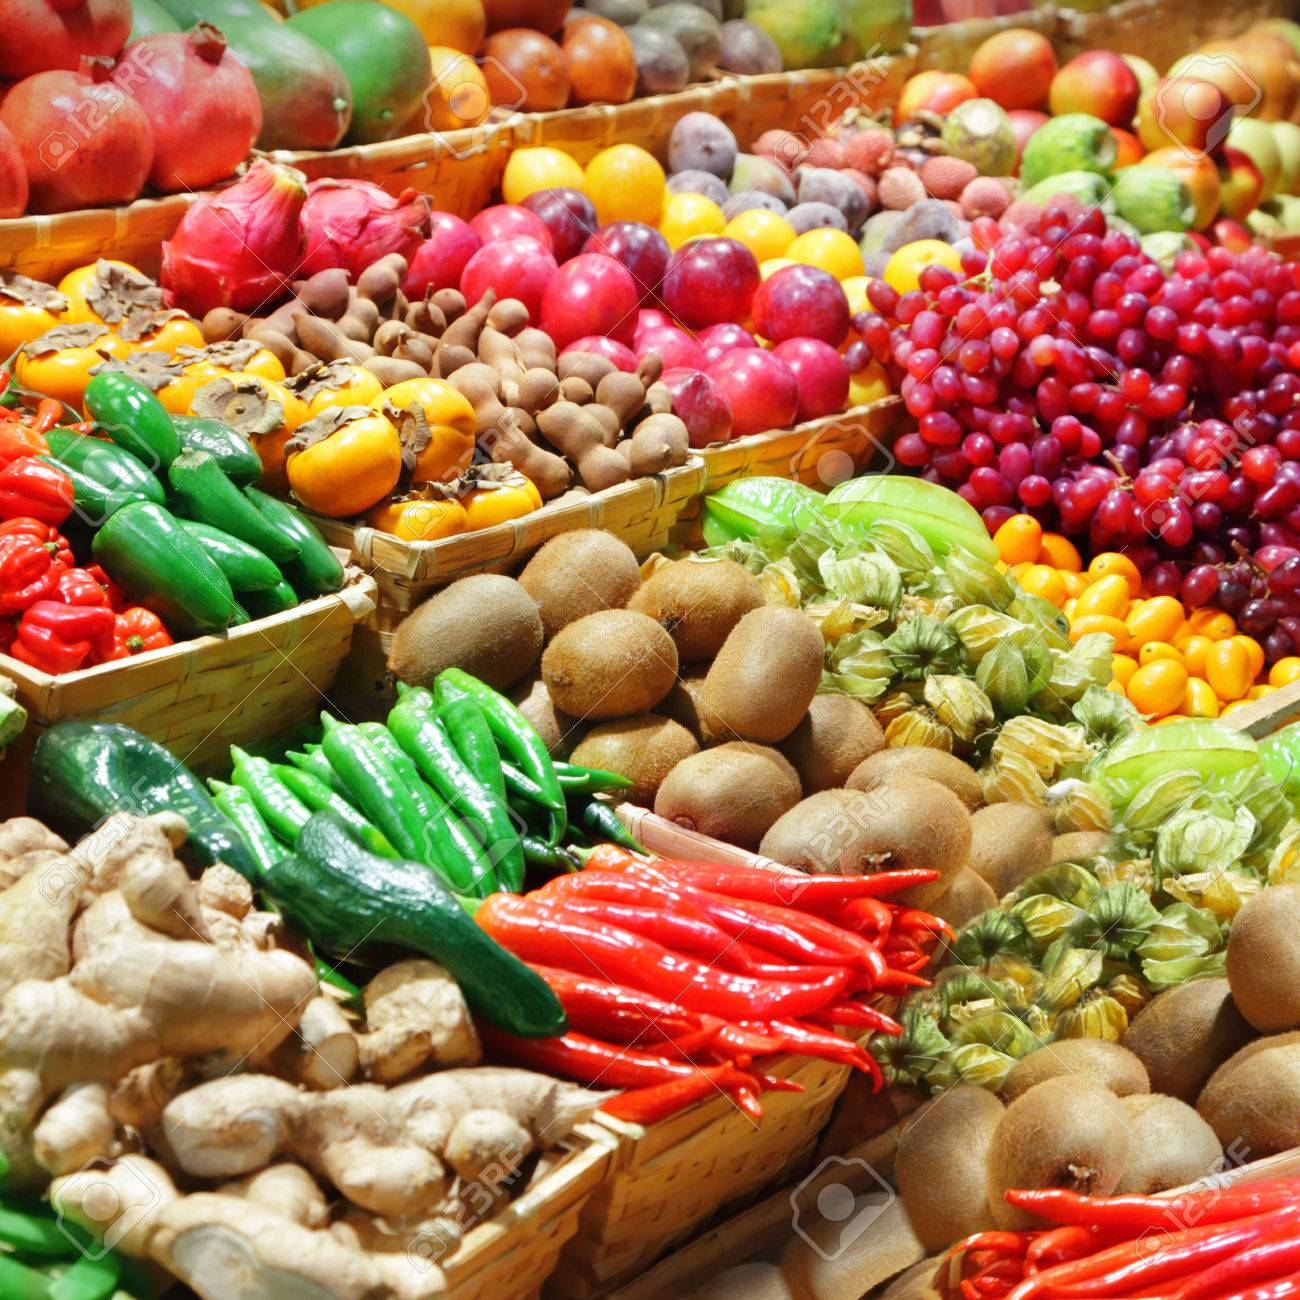 Fruits and vegetables at a farmer - 32964314